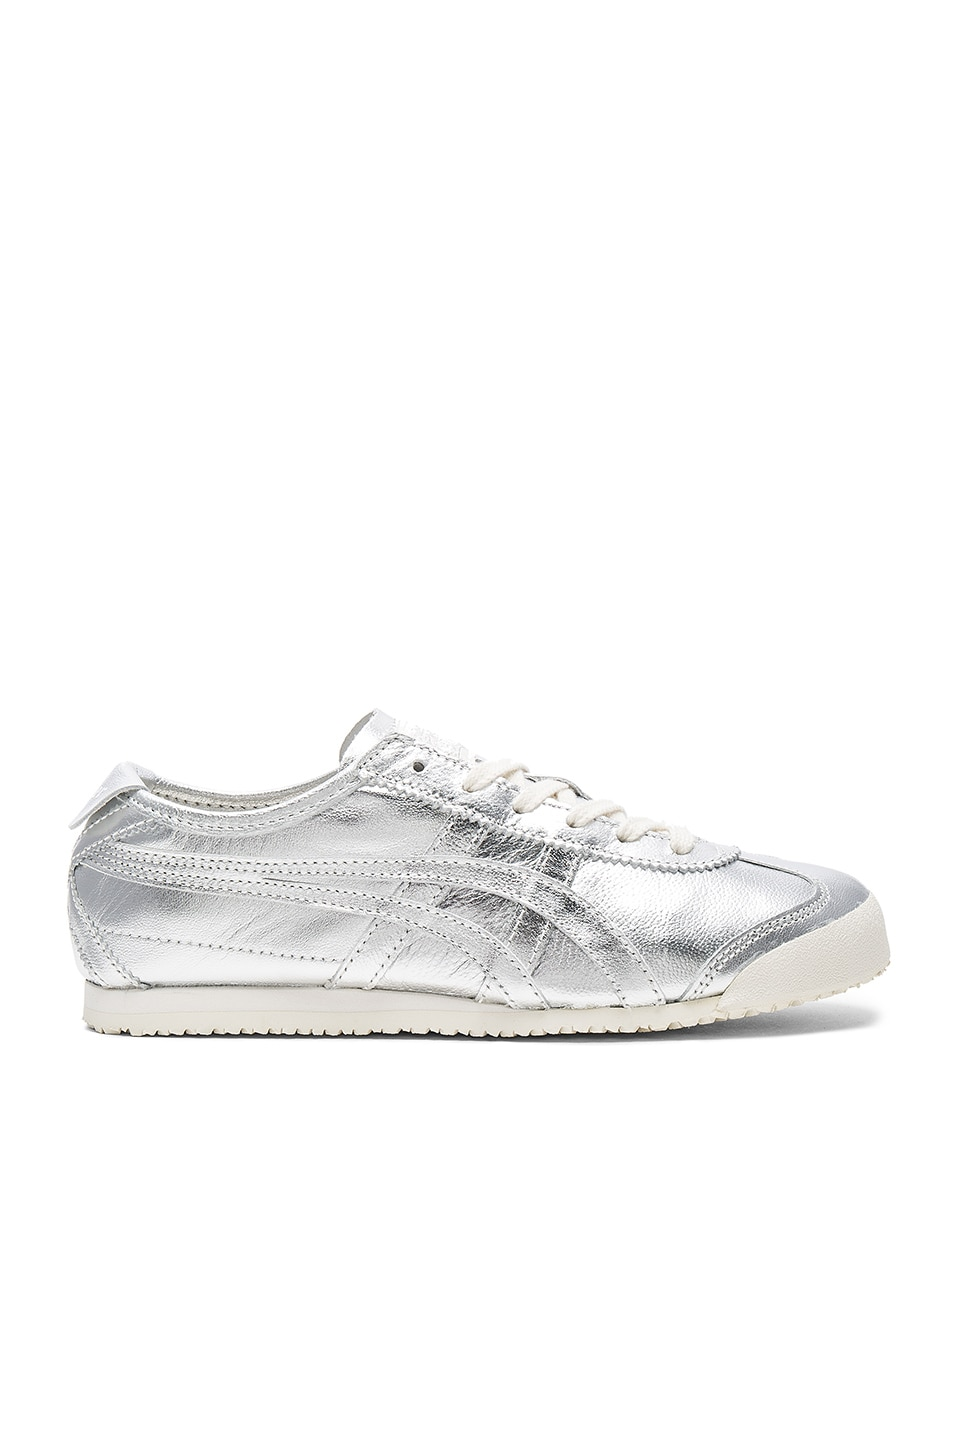 Onitsuka Tiger Mexico 66 Sneaker in Silver & Silver